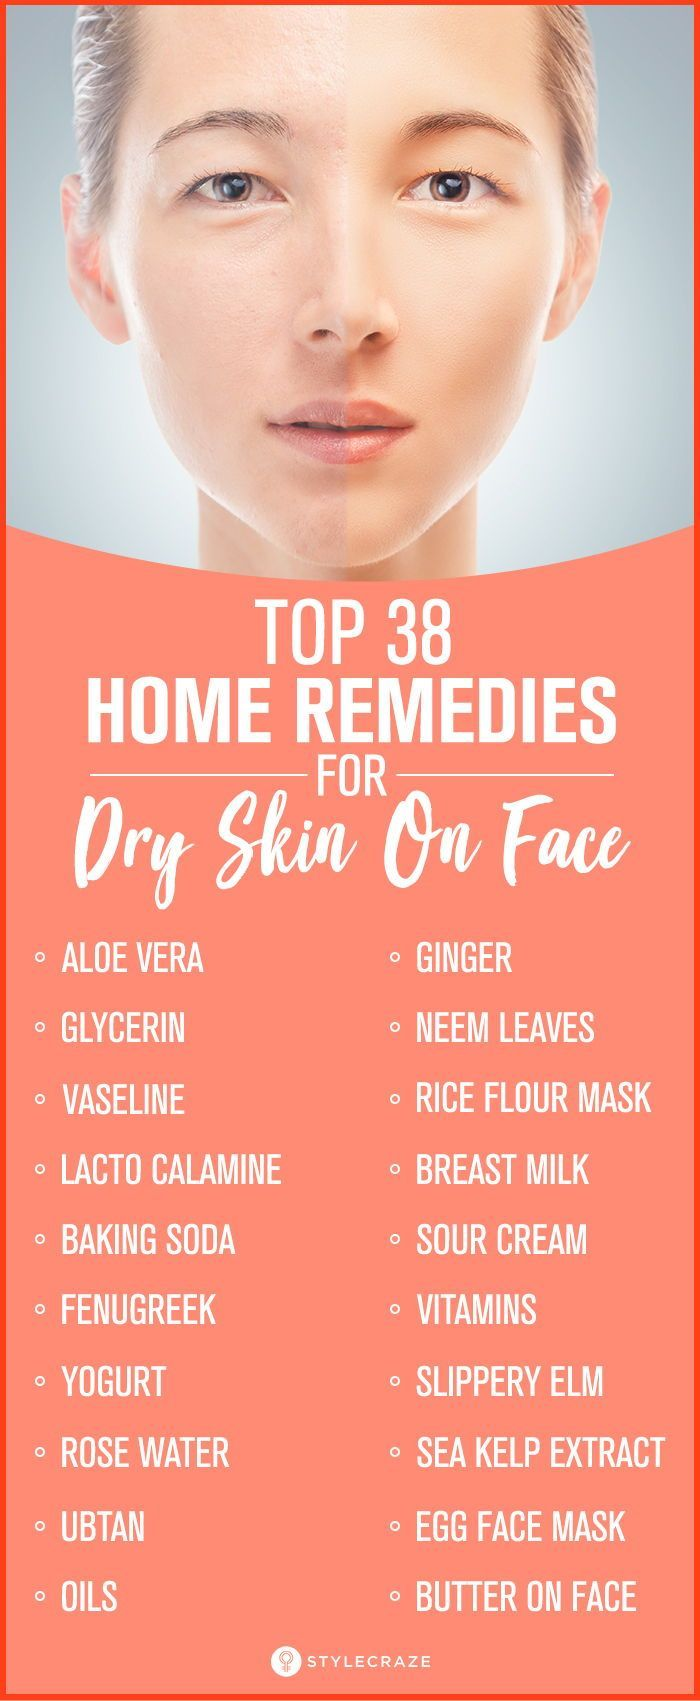 Top 38 Home Remedies For Dry Skin On Face Homeremedies Dryskincauses Dry Skin On Face Dry Skin Remedies Skin Remedies